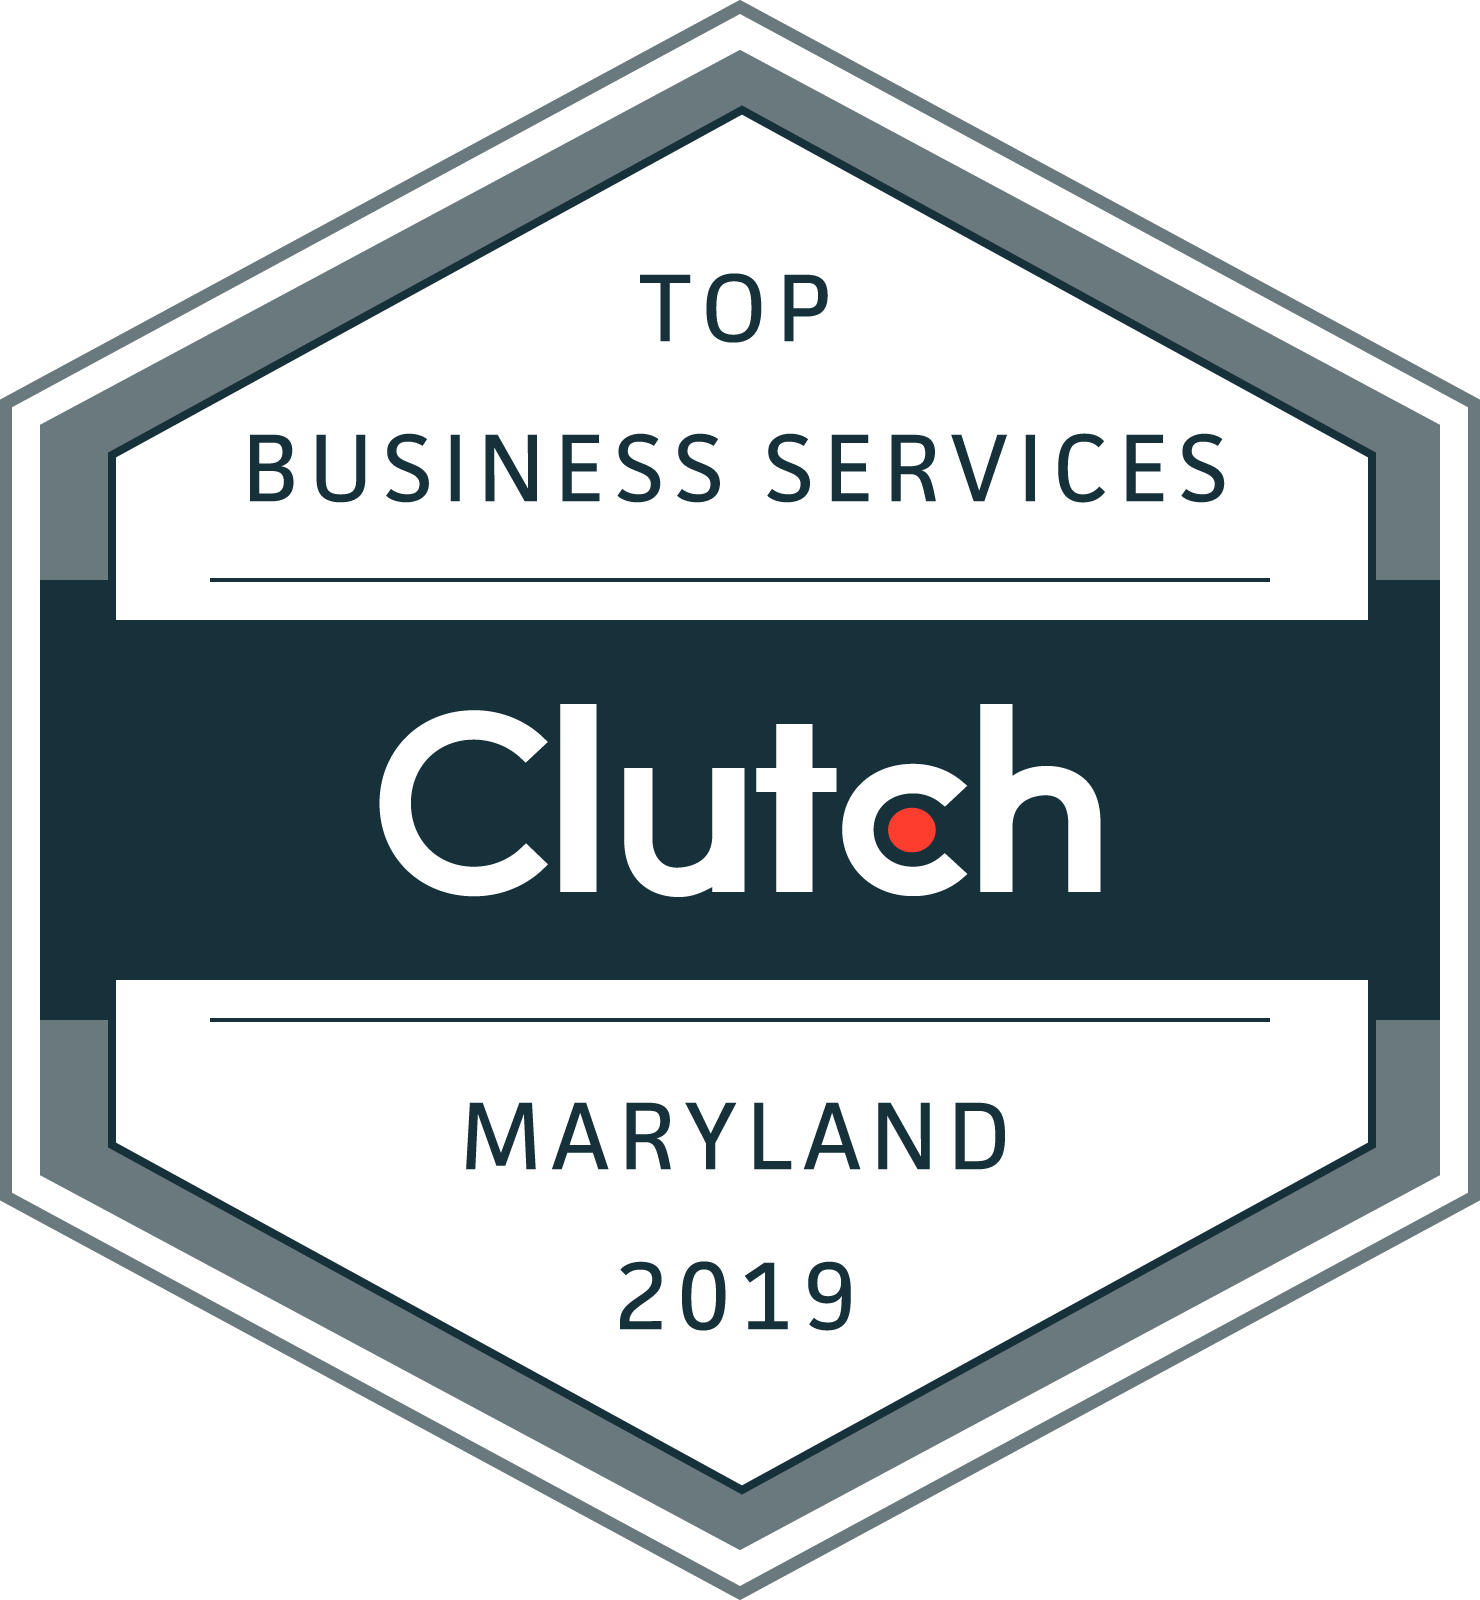 Top Business Services Company in Maryland - Clutch 2019.png